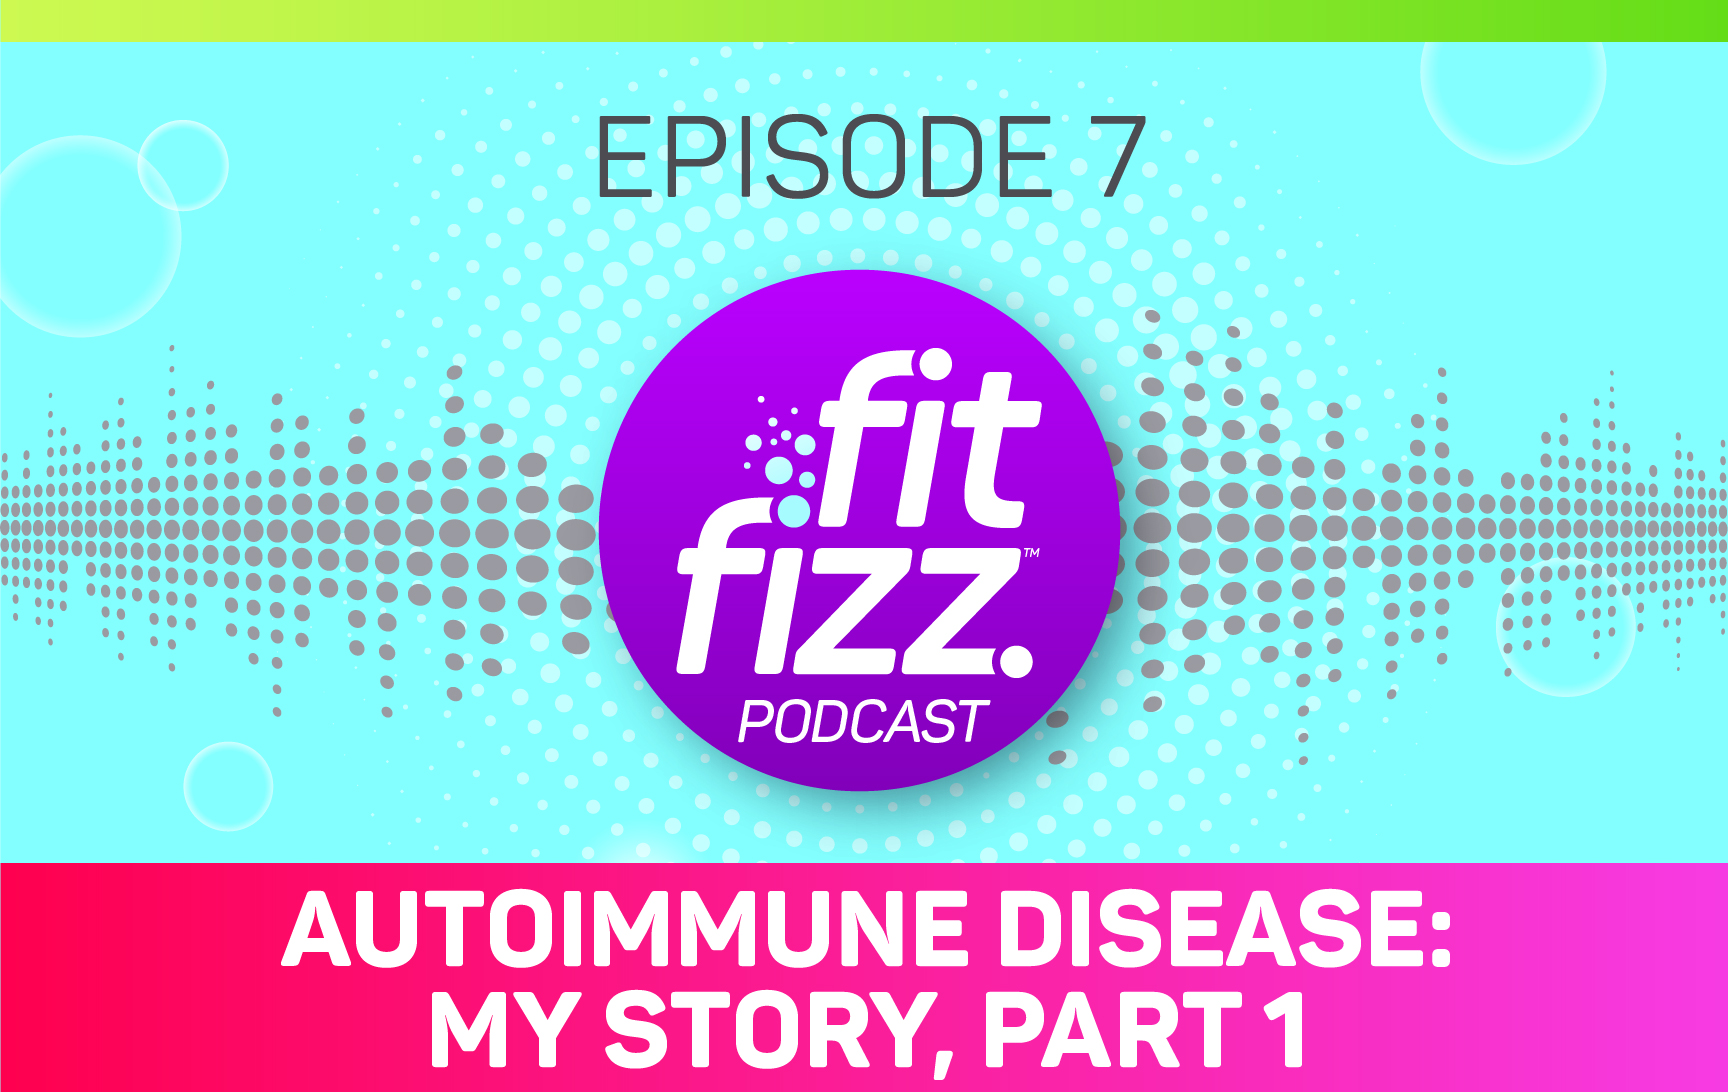 Episode 07: Autoimmune Disease: My Story, Part 1